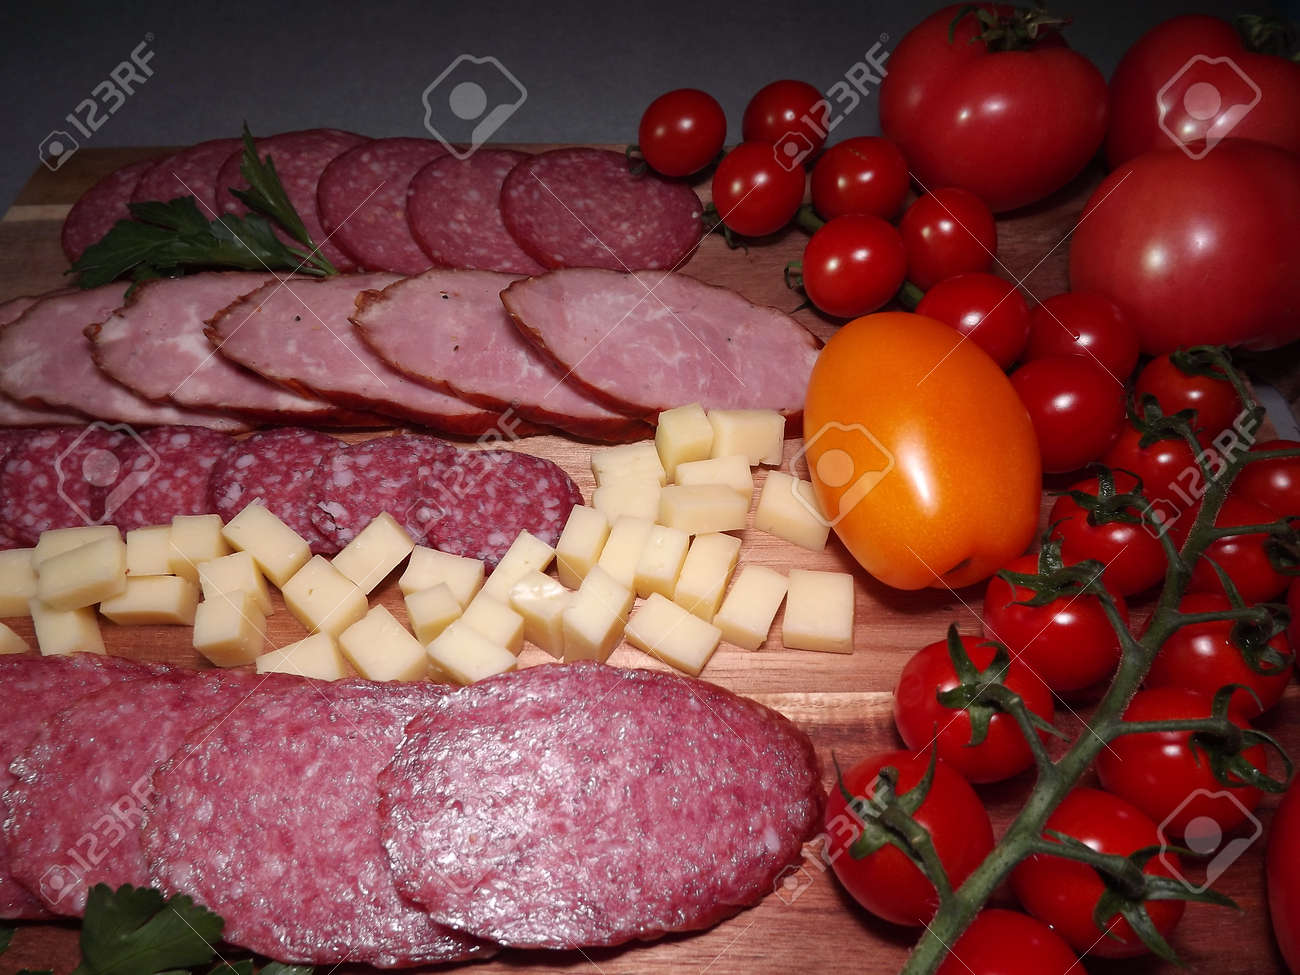 slicing smoked sausage of four varieties with cheese and red and yellow tomatoes and cherry tomatoes. High quality photo - 166249300